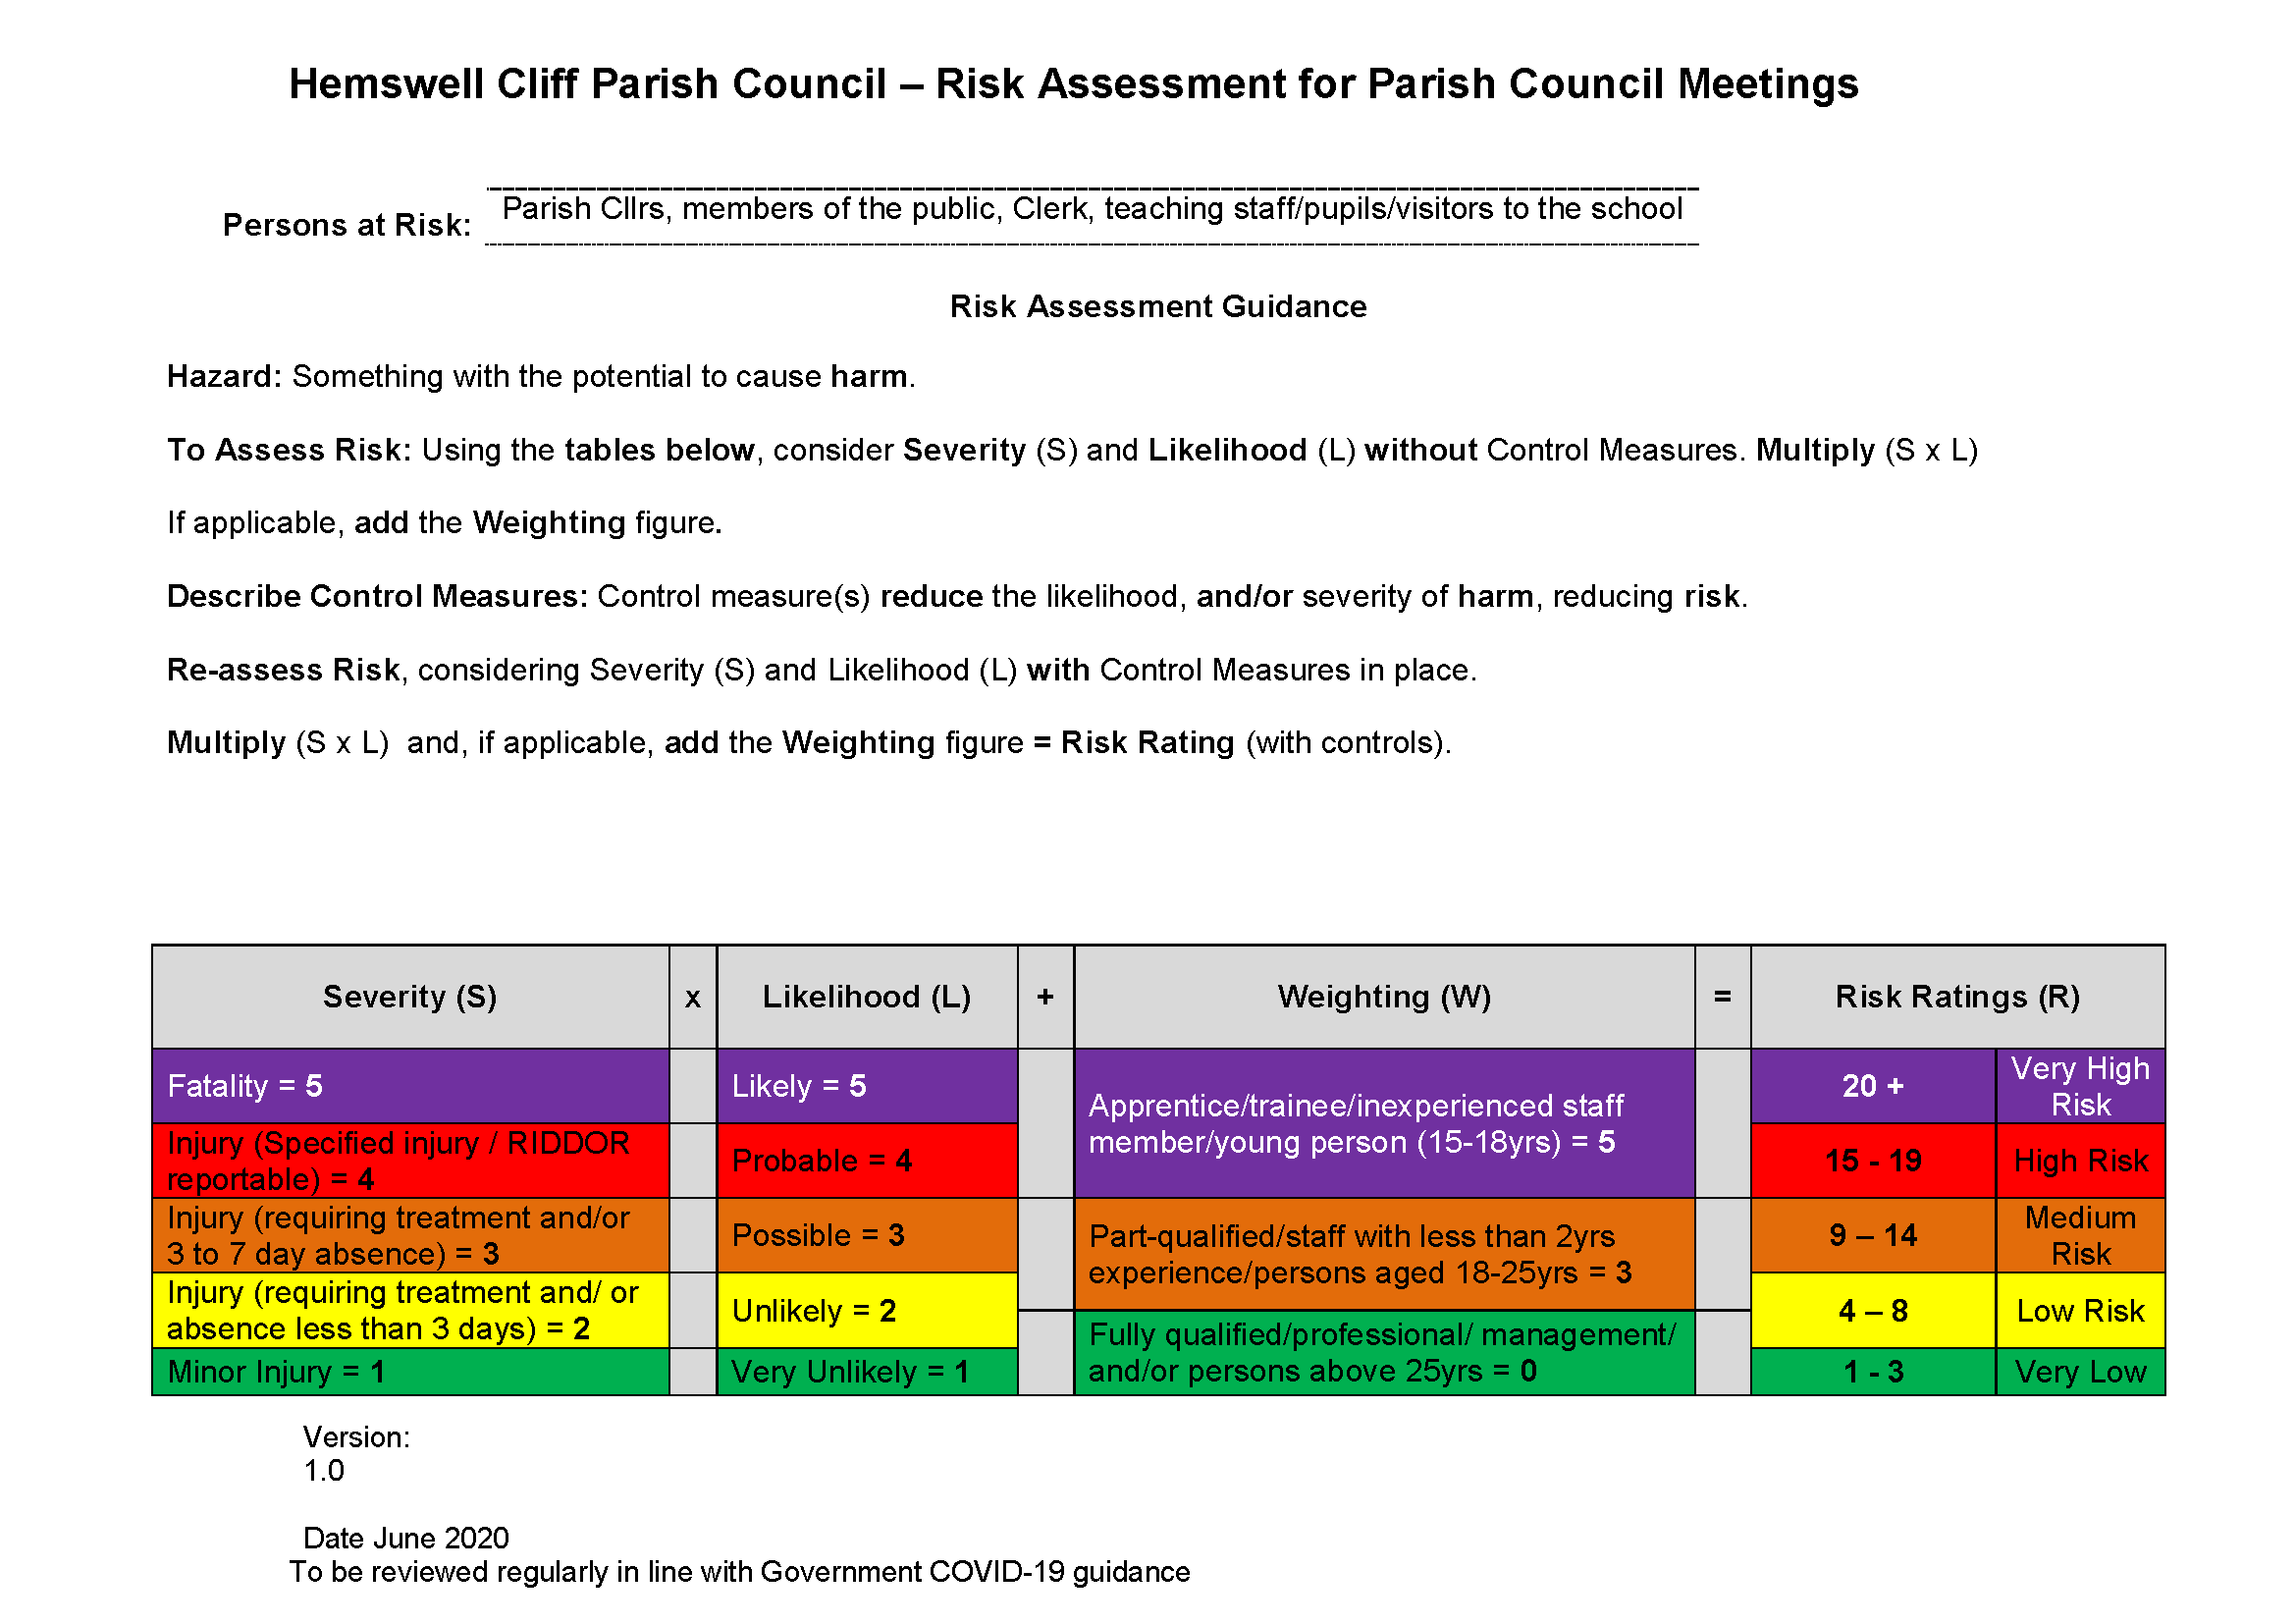 HCPC_risk_assessment_meetings_Page_1.png